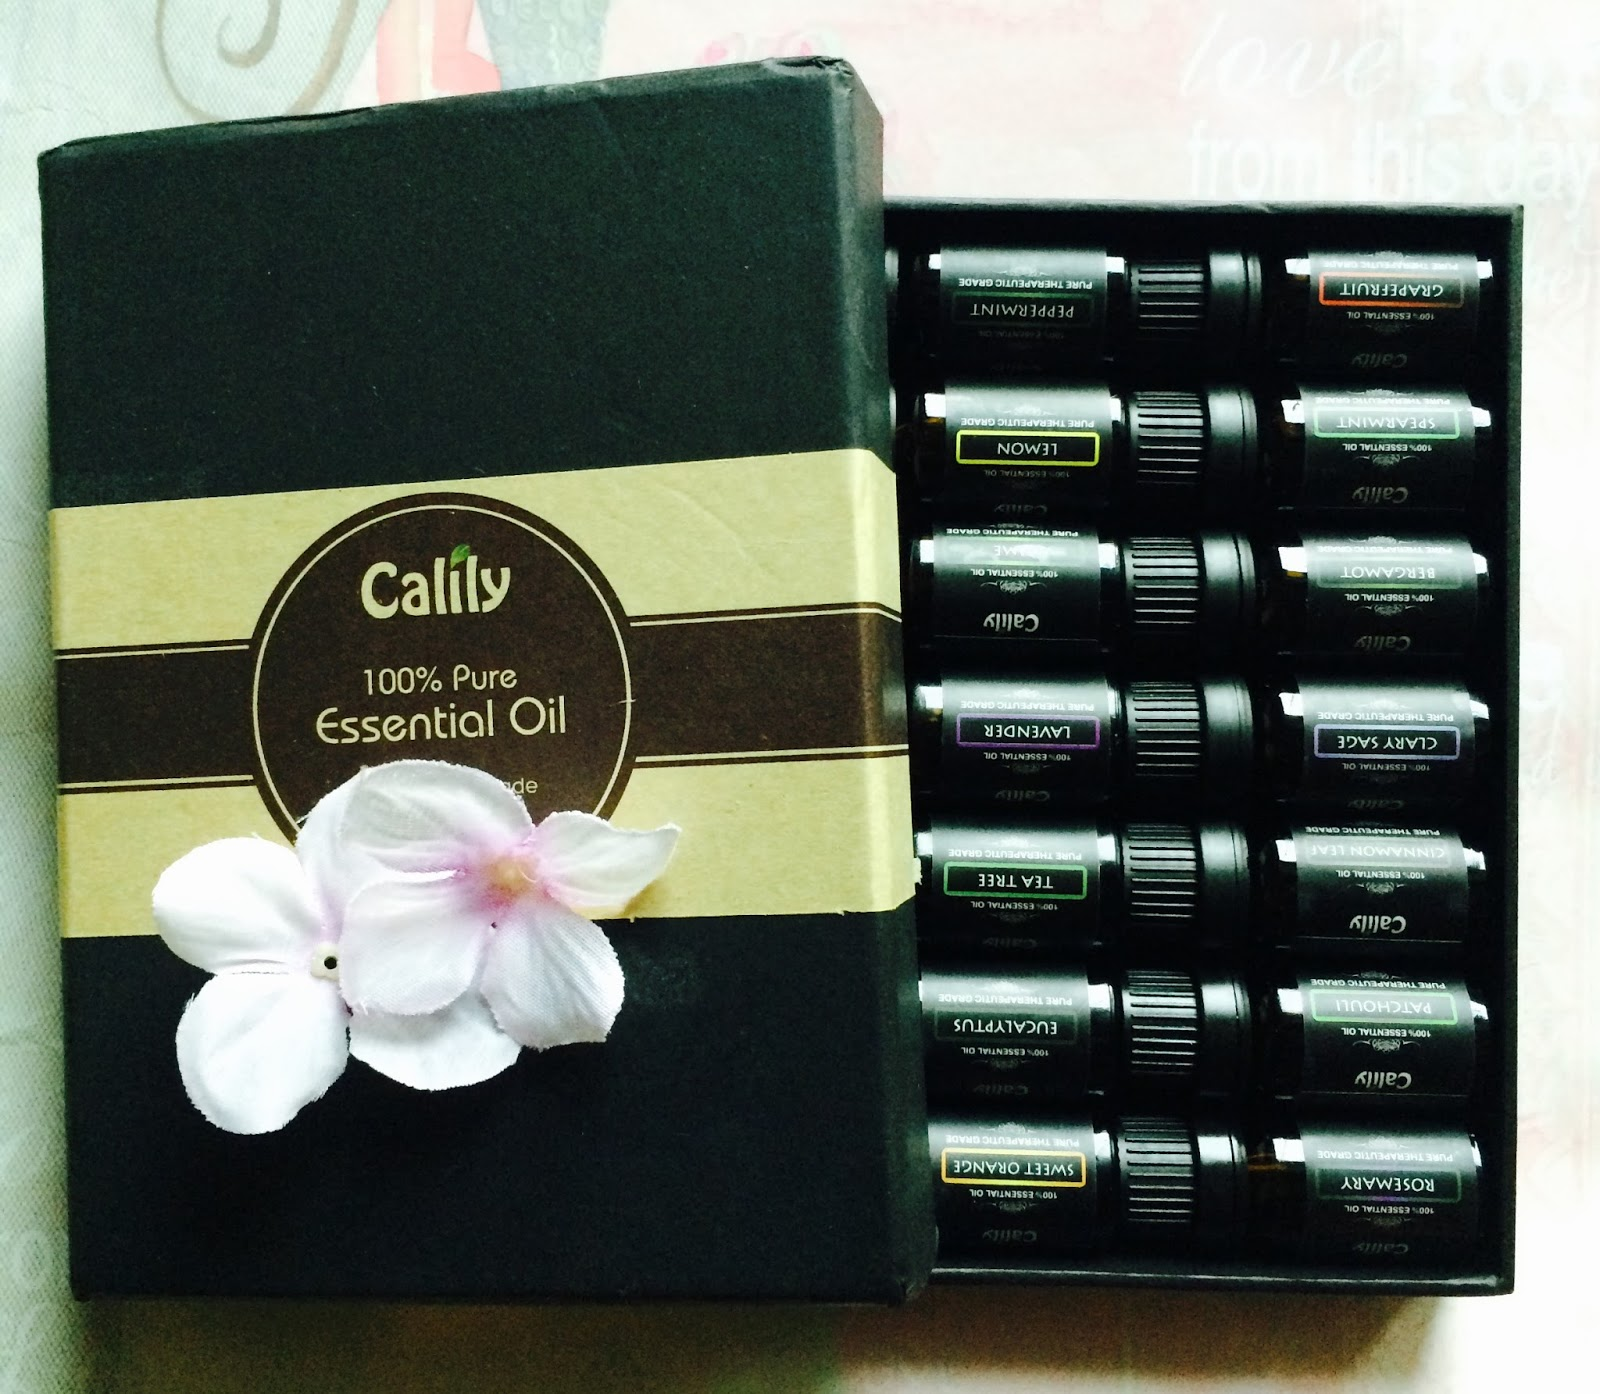 Essential Oil Gift Set from Calily! #Aromatherapy #StarterKit - My ...